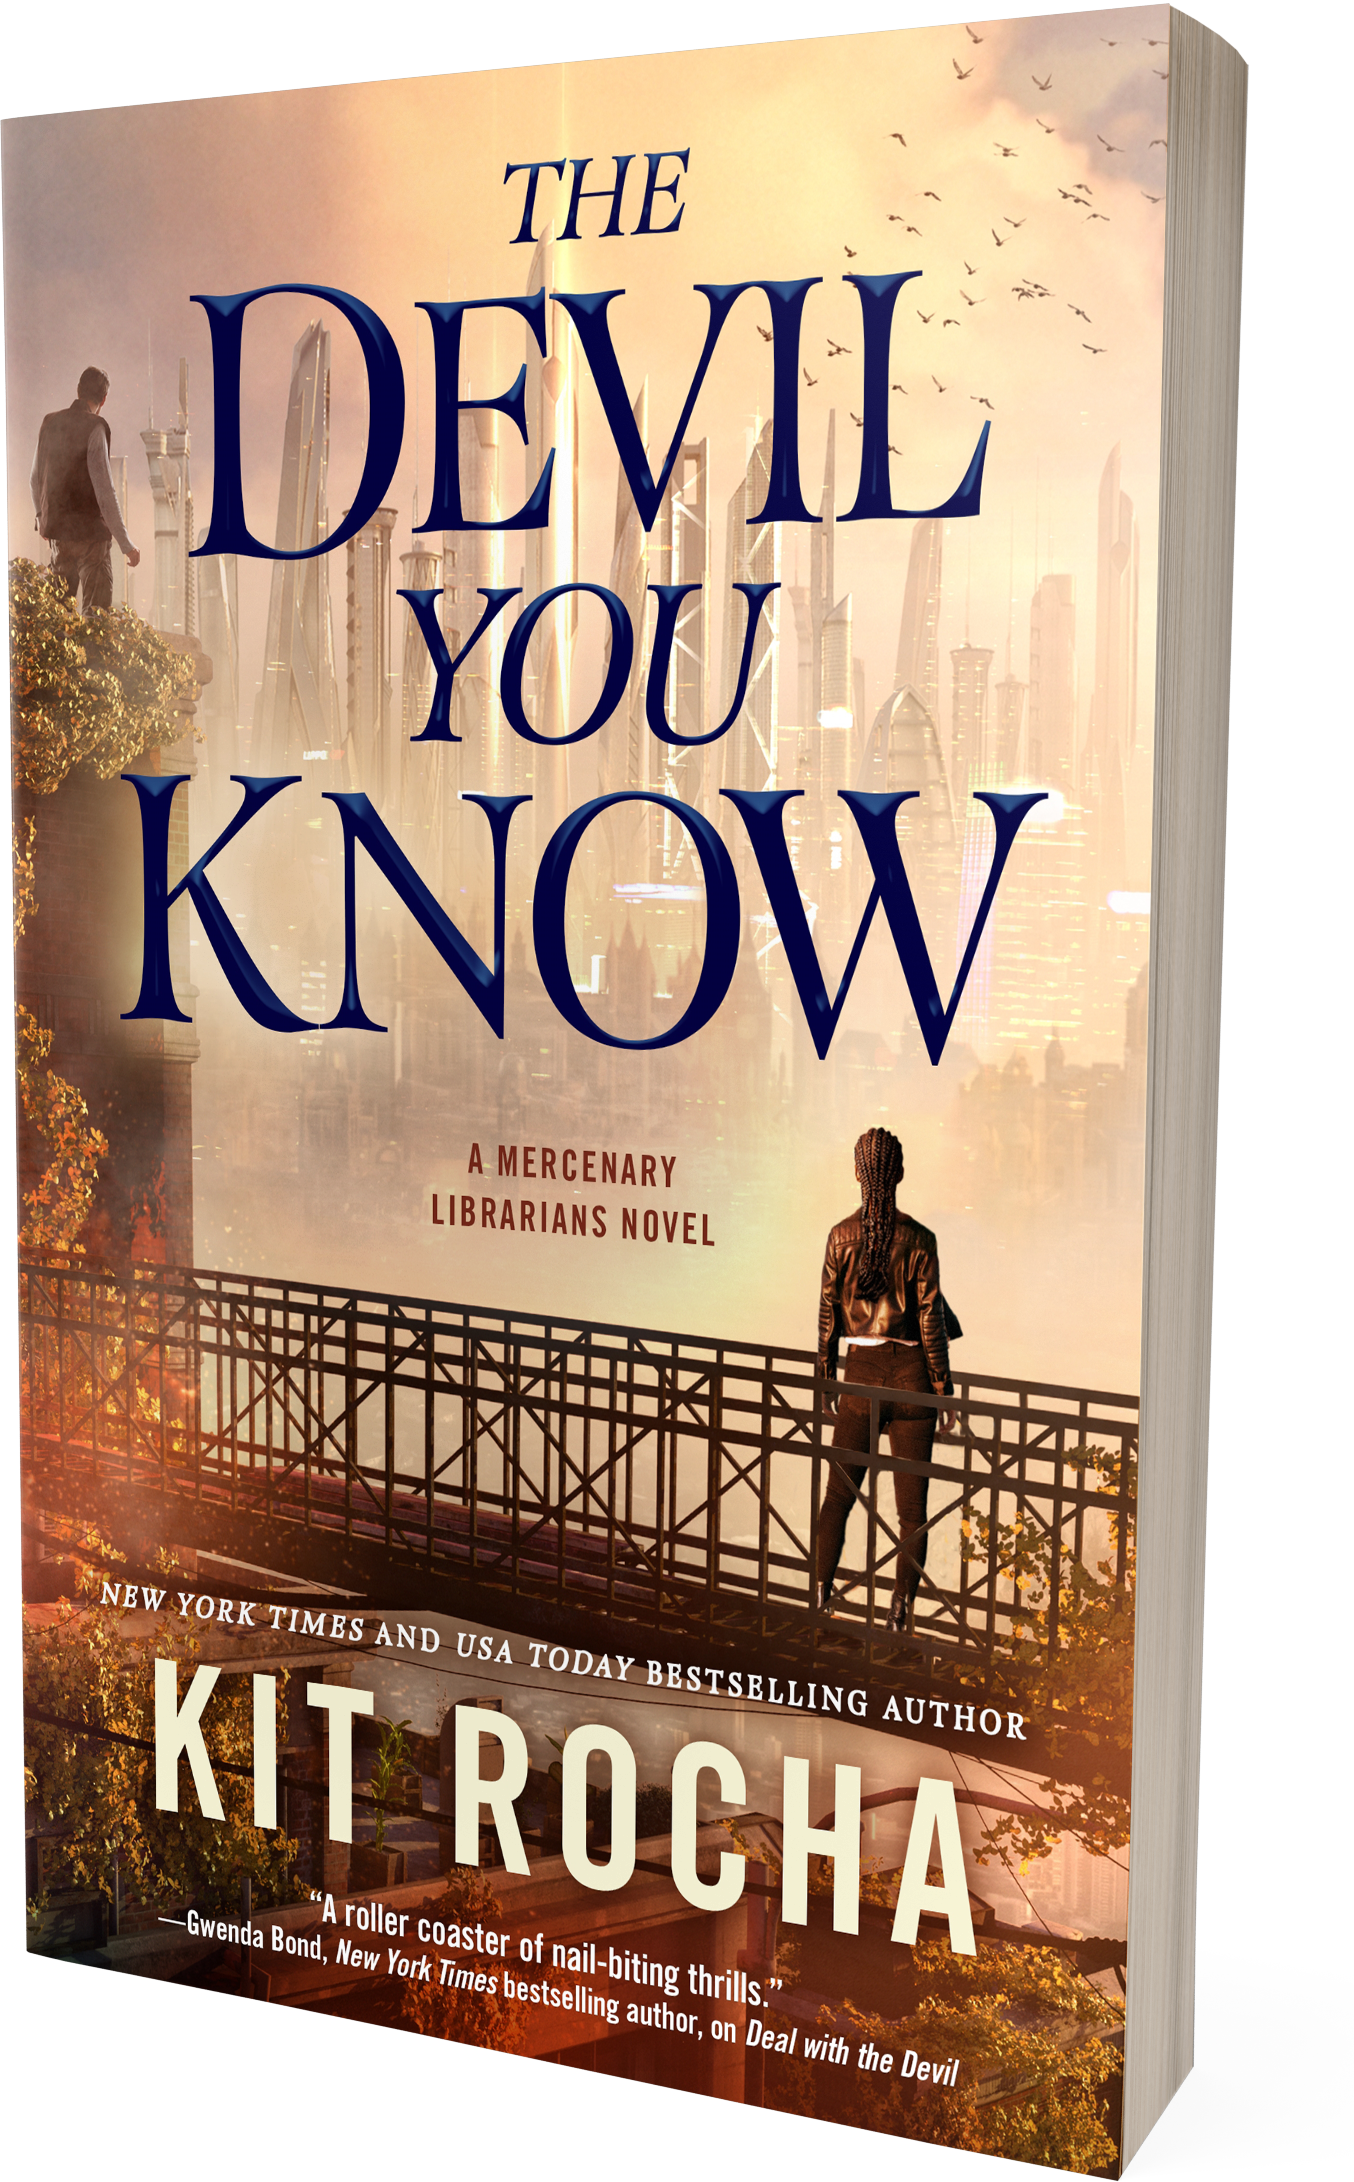 The Devil You Know by Kit Rocha